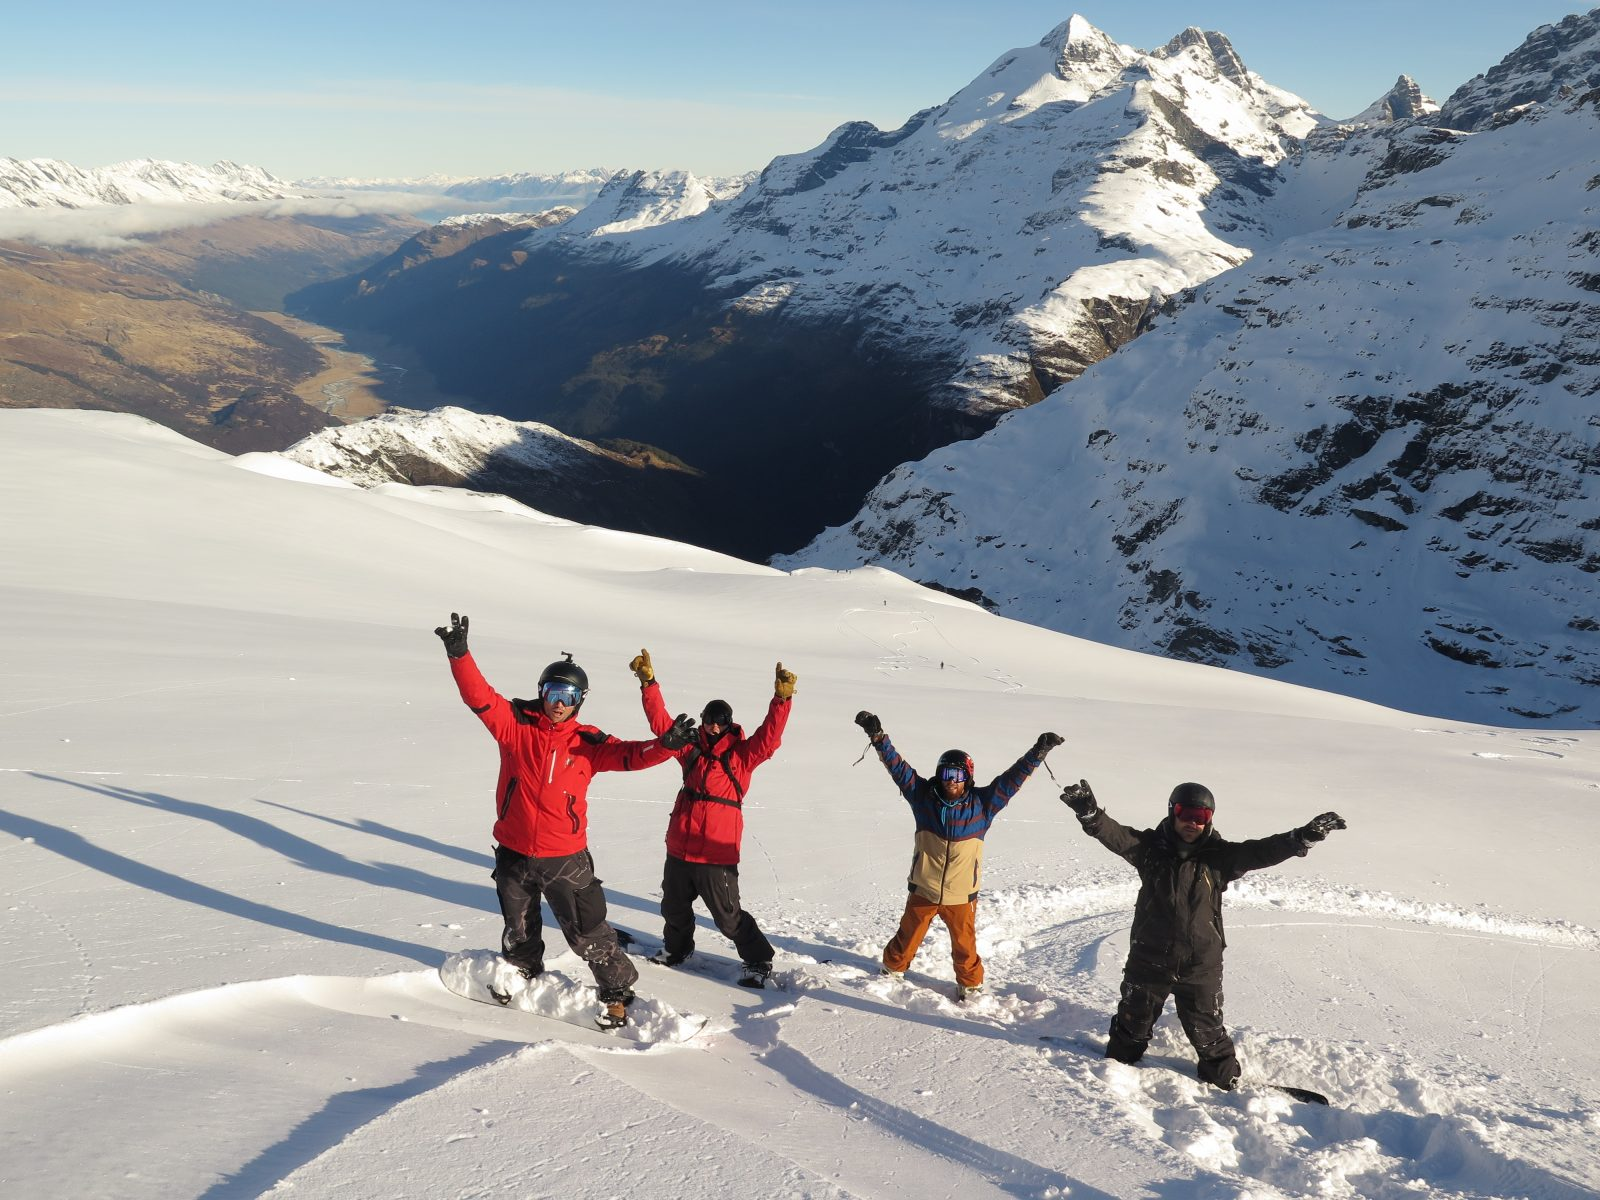 Heliskiing in the Southern Lakes is special, as you get the best views, amazing snow which makes for happy faces…